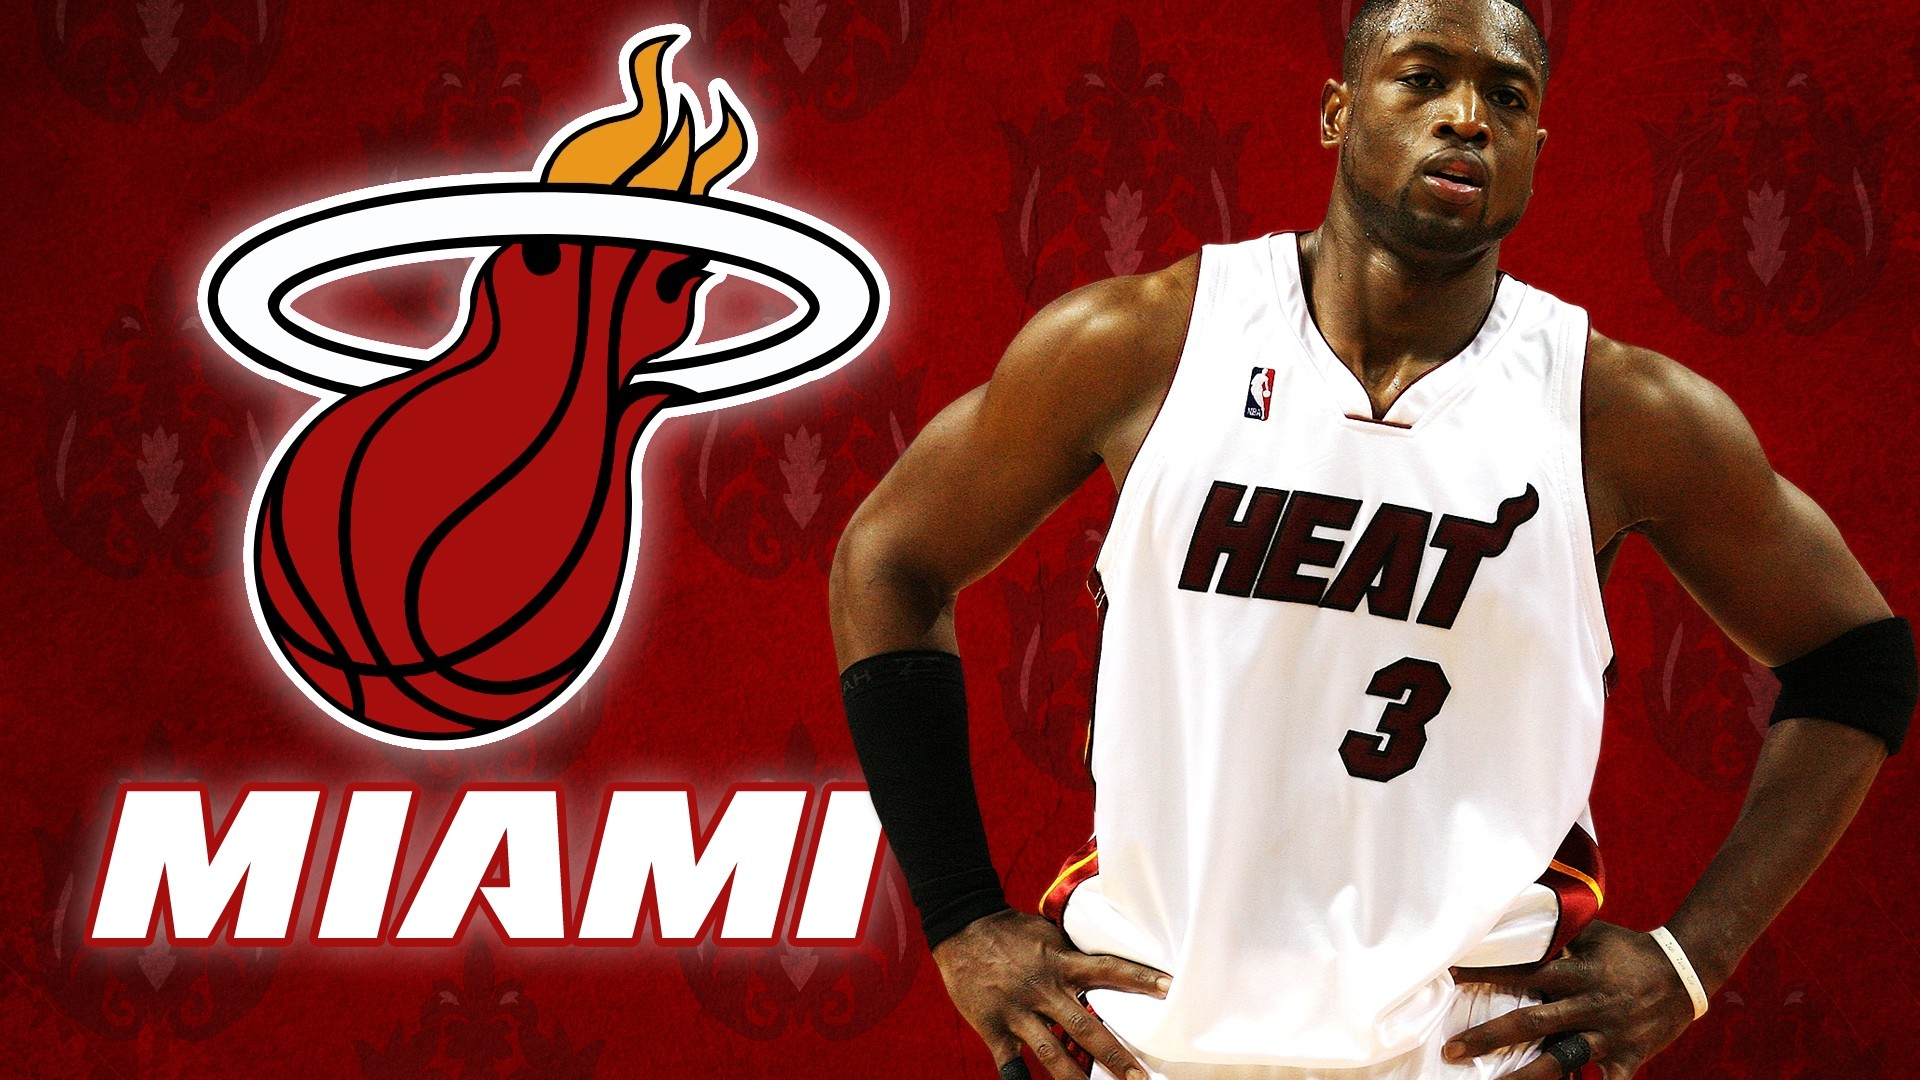 1920x1080 miami heat wallpaper hd backgrounds download hd background wallpapers free  amazing cool tablet smart phone high definition 1920×1080 Wallpaper HD